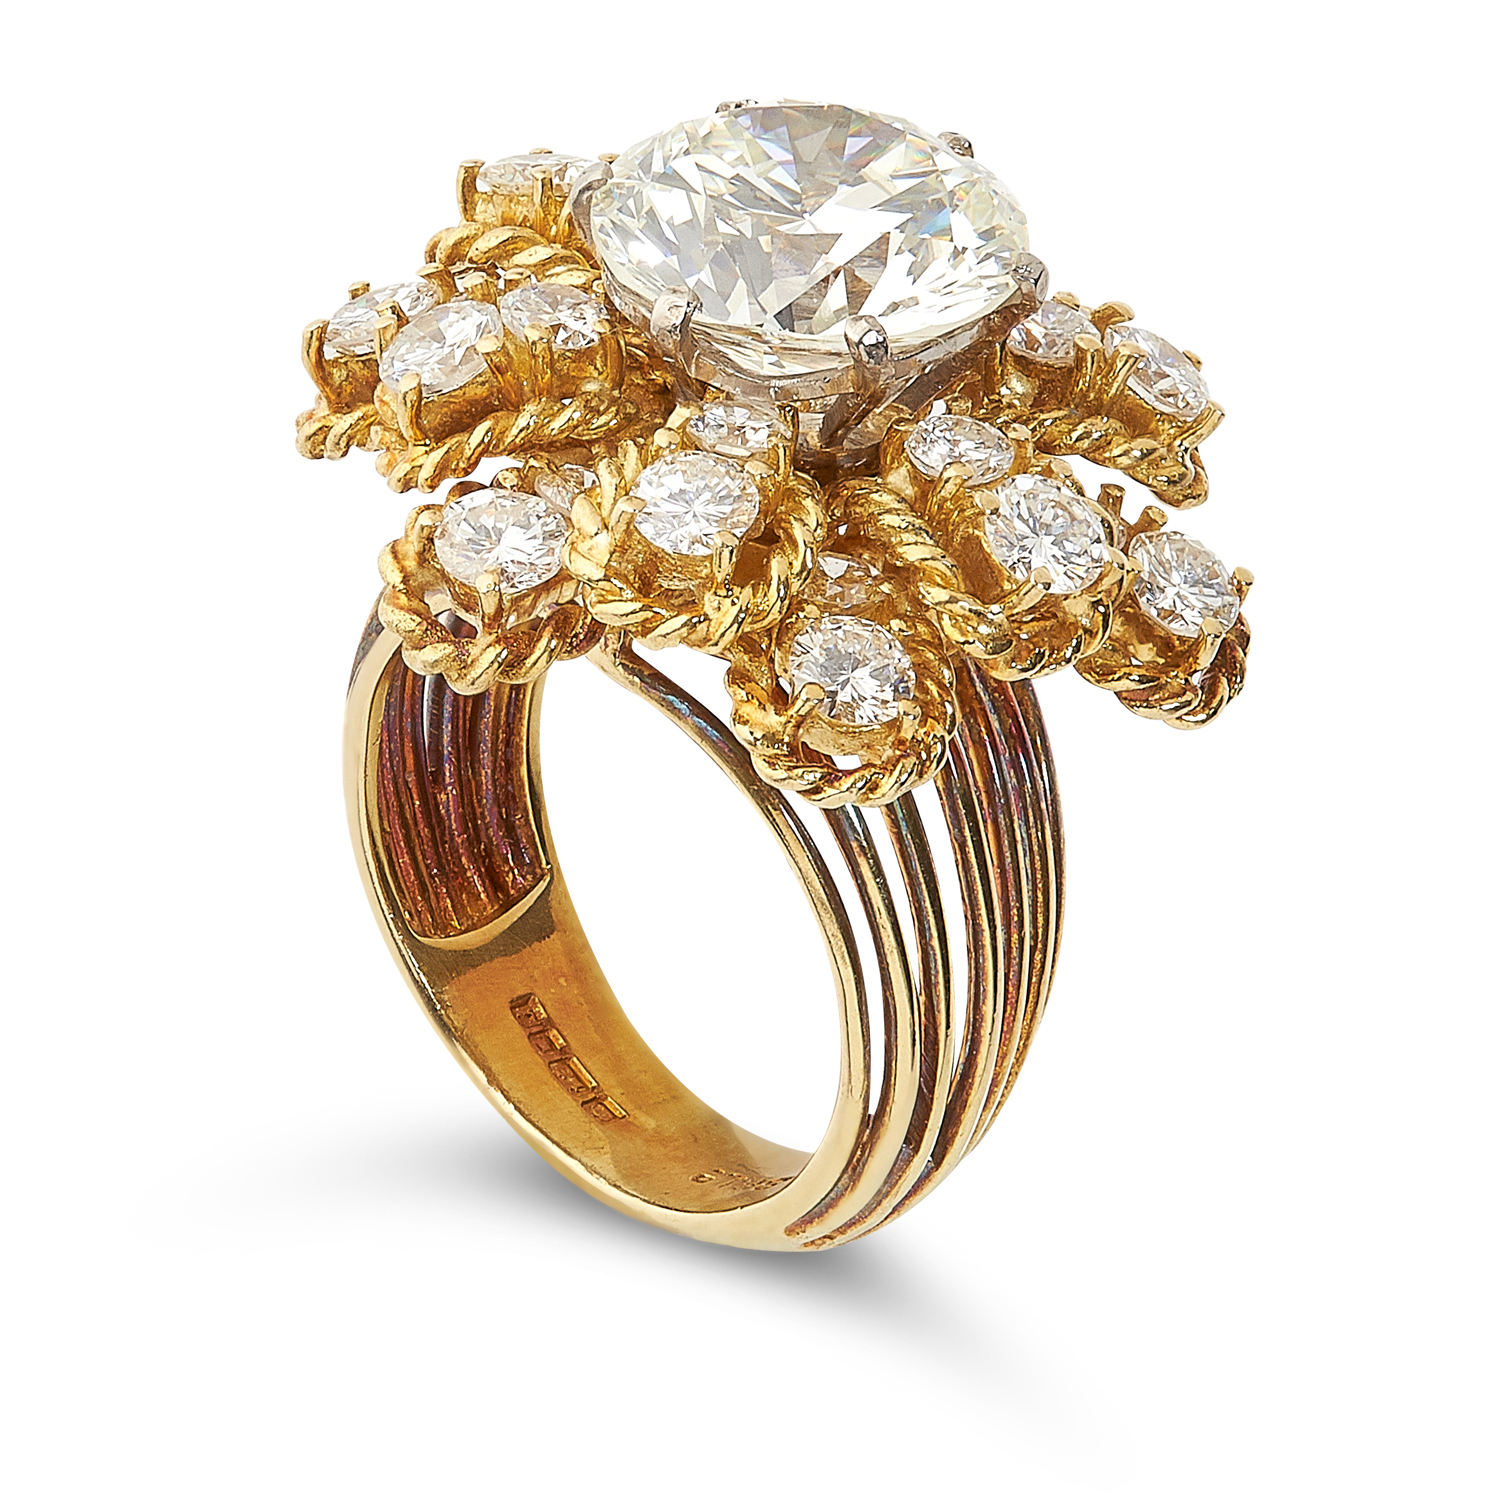 A 4.76 CARAT DIAMOND RING, BEN ROSENFELD 1964 in 18ct yellow gold, set with a central round cut - Image 2 of 2